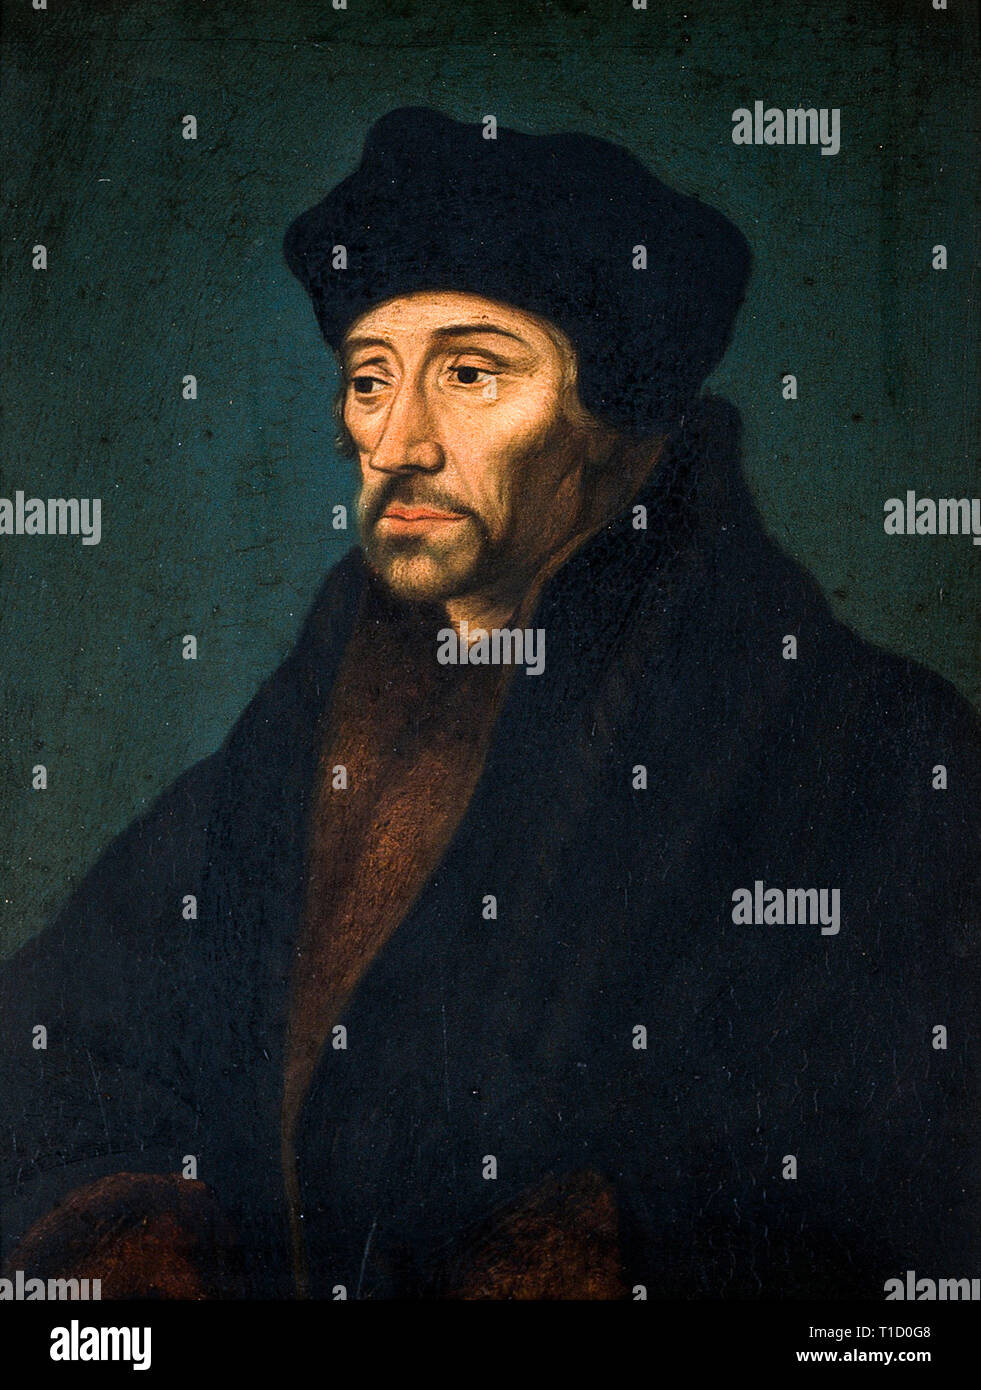 Desiderius Erasmus, portrait painting, c. 16th Century, artist unknown - Stock Image